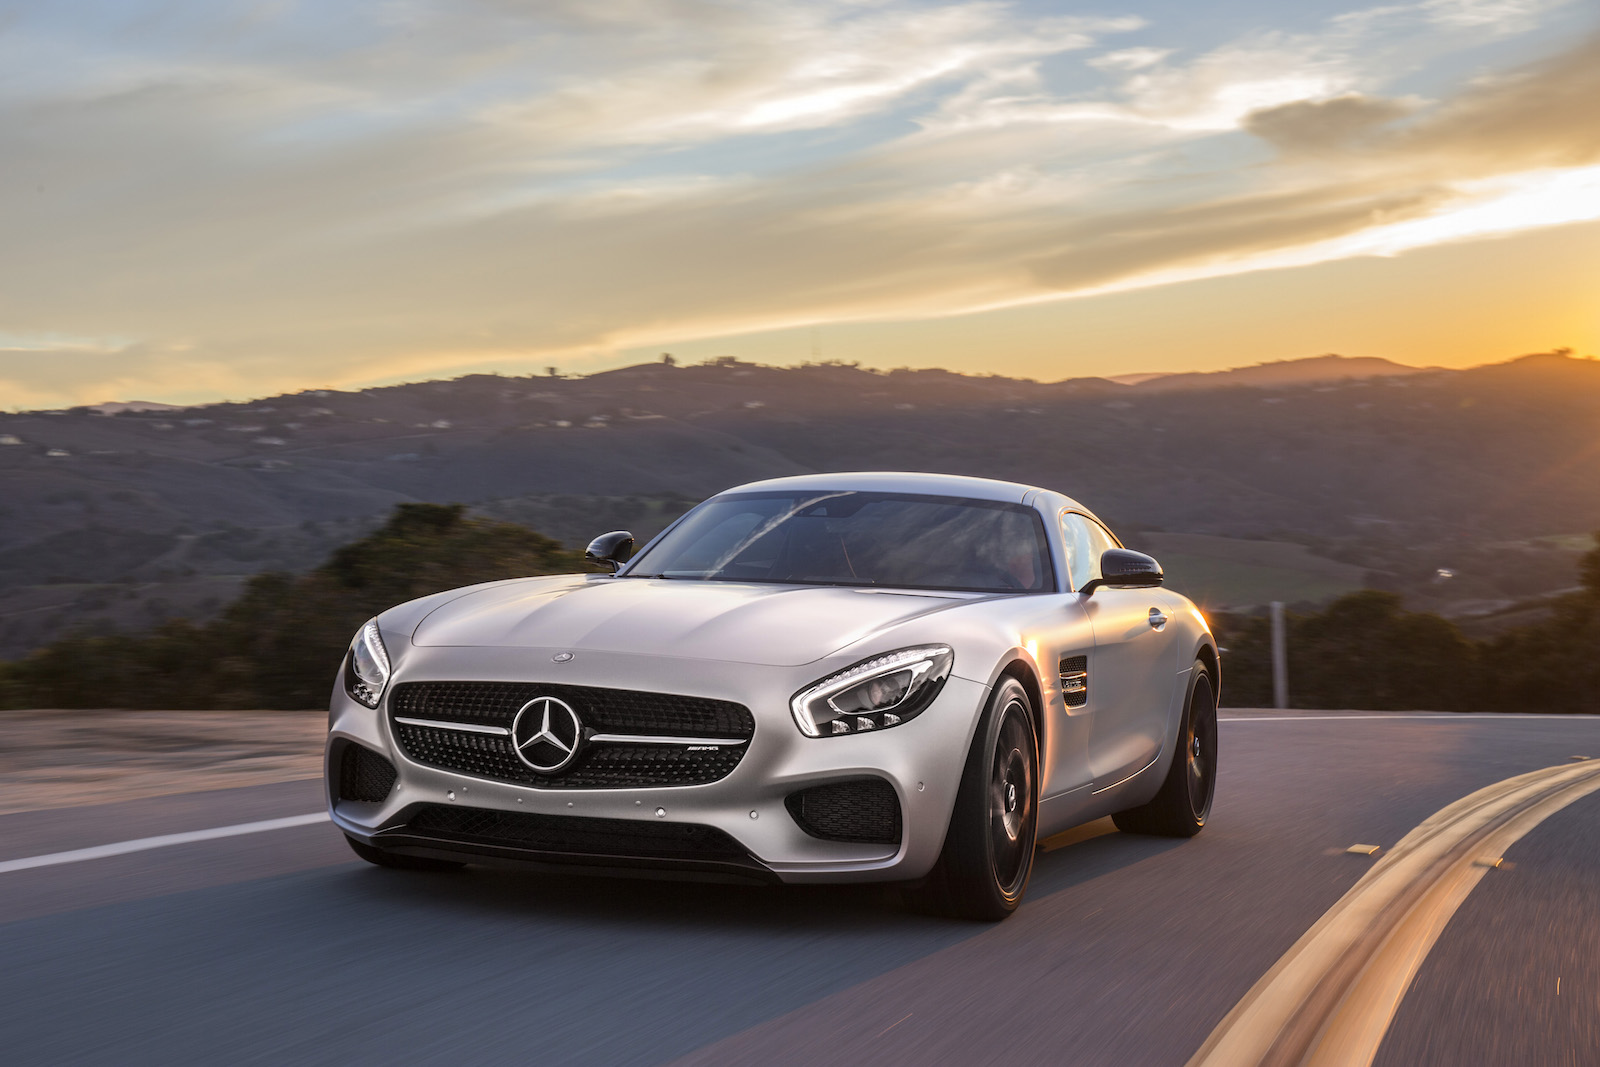 Mercedes Prices New Amg Gt From 112 125